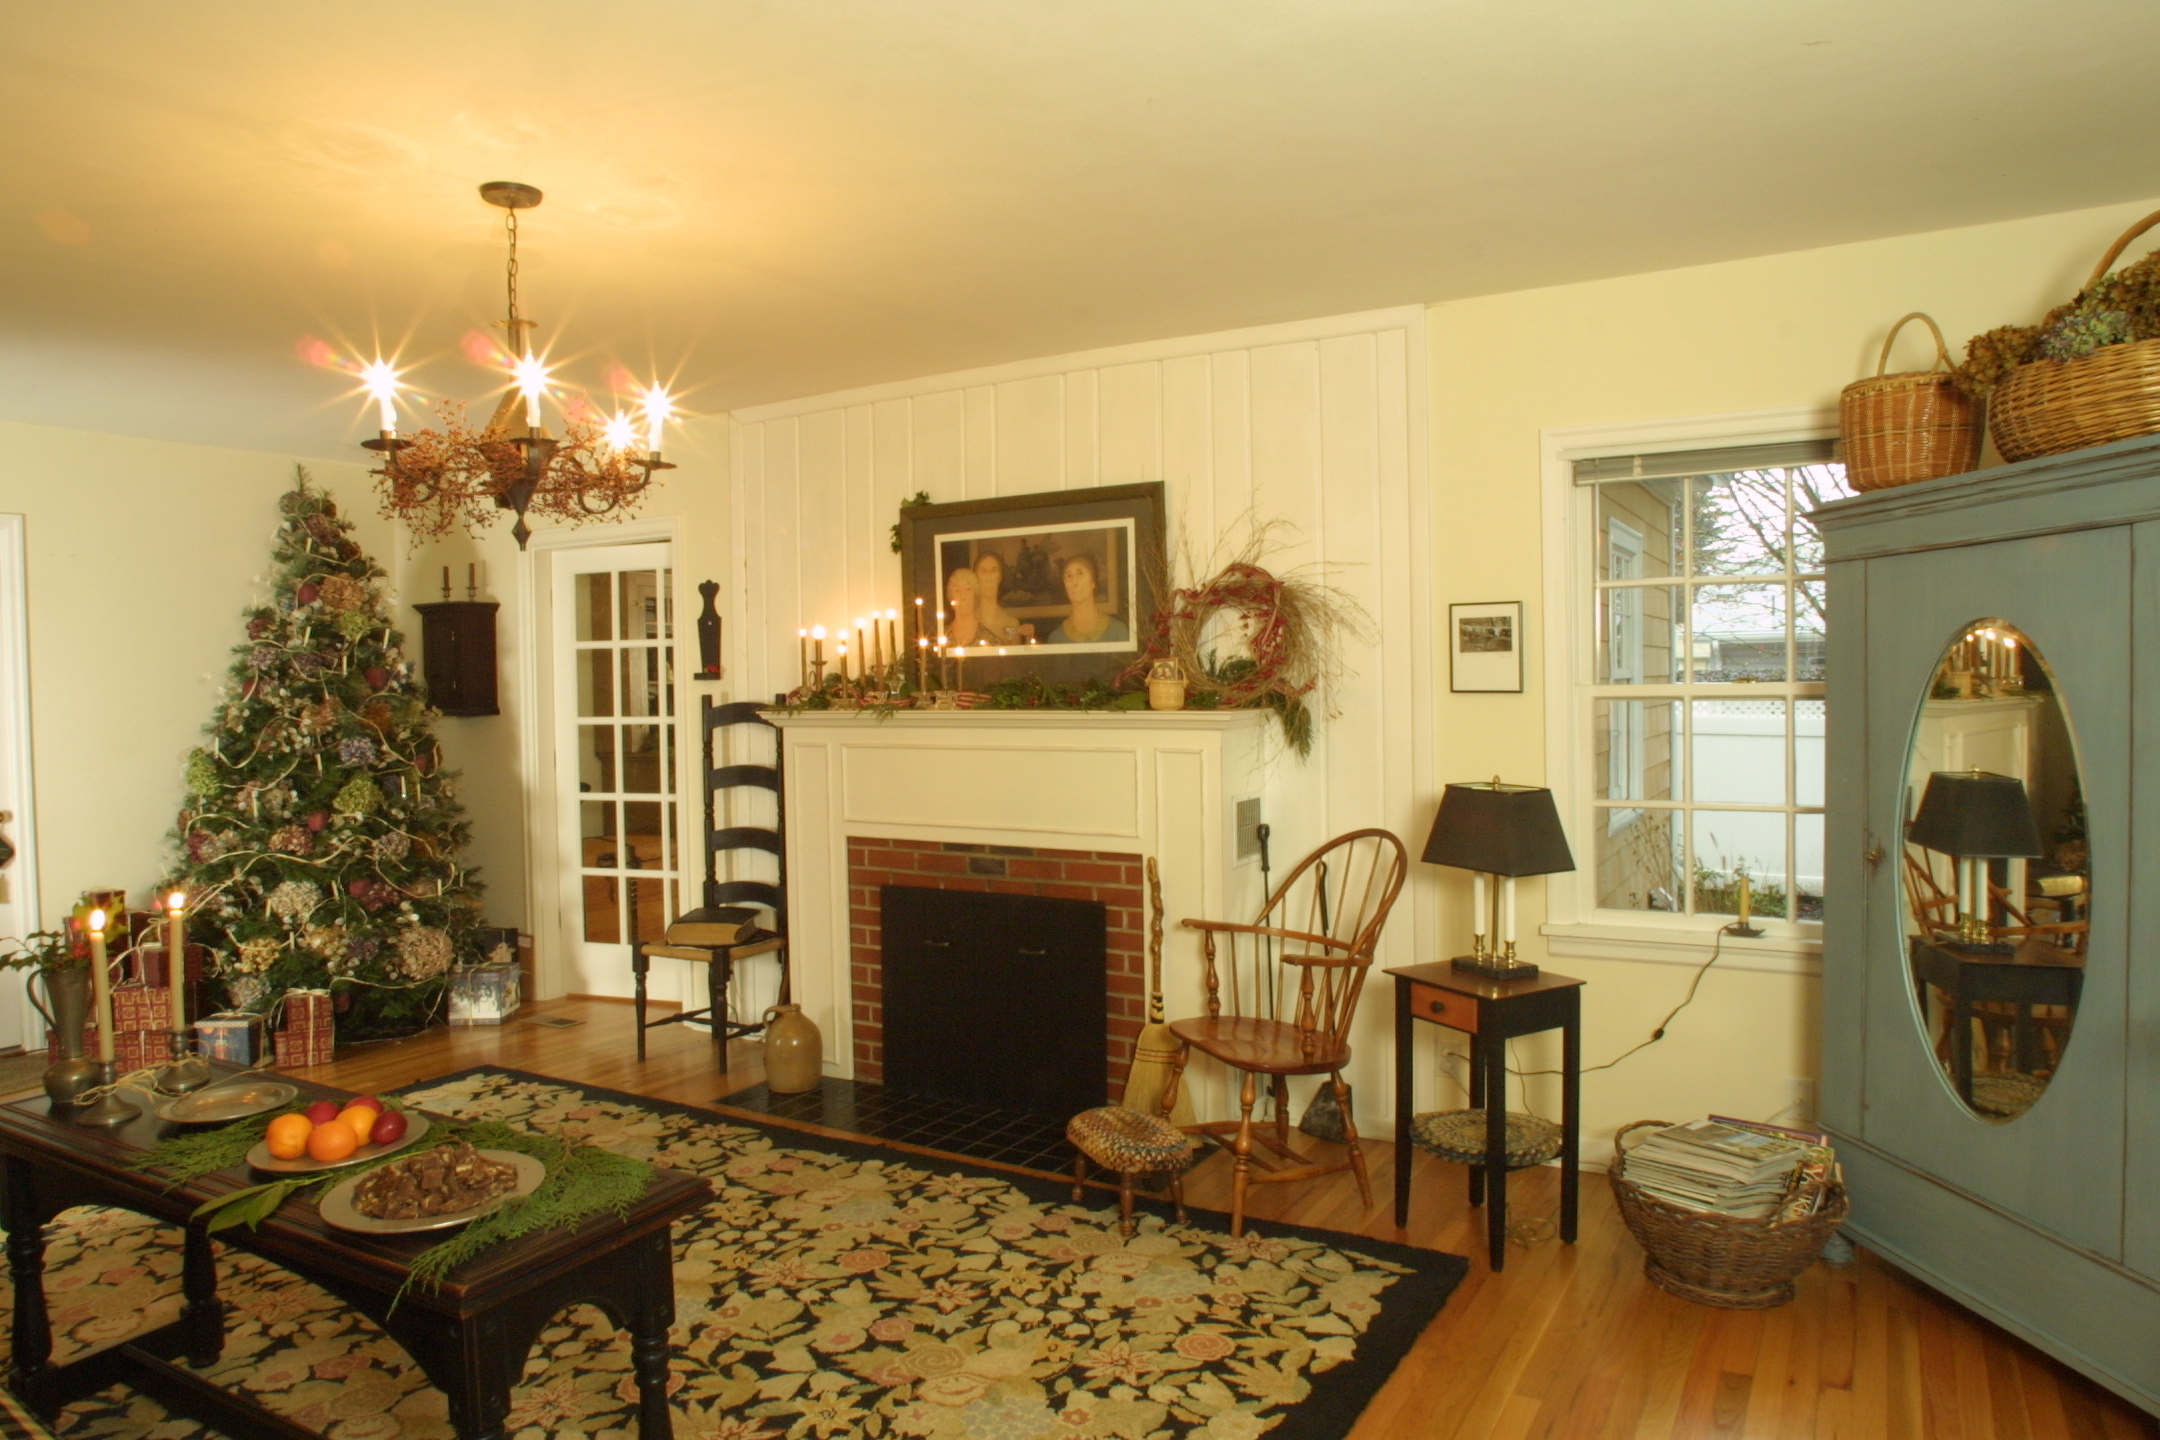 Living room of Cape Cod home in Corvallis, OR